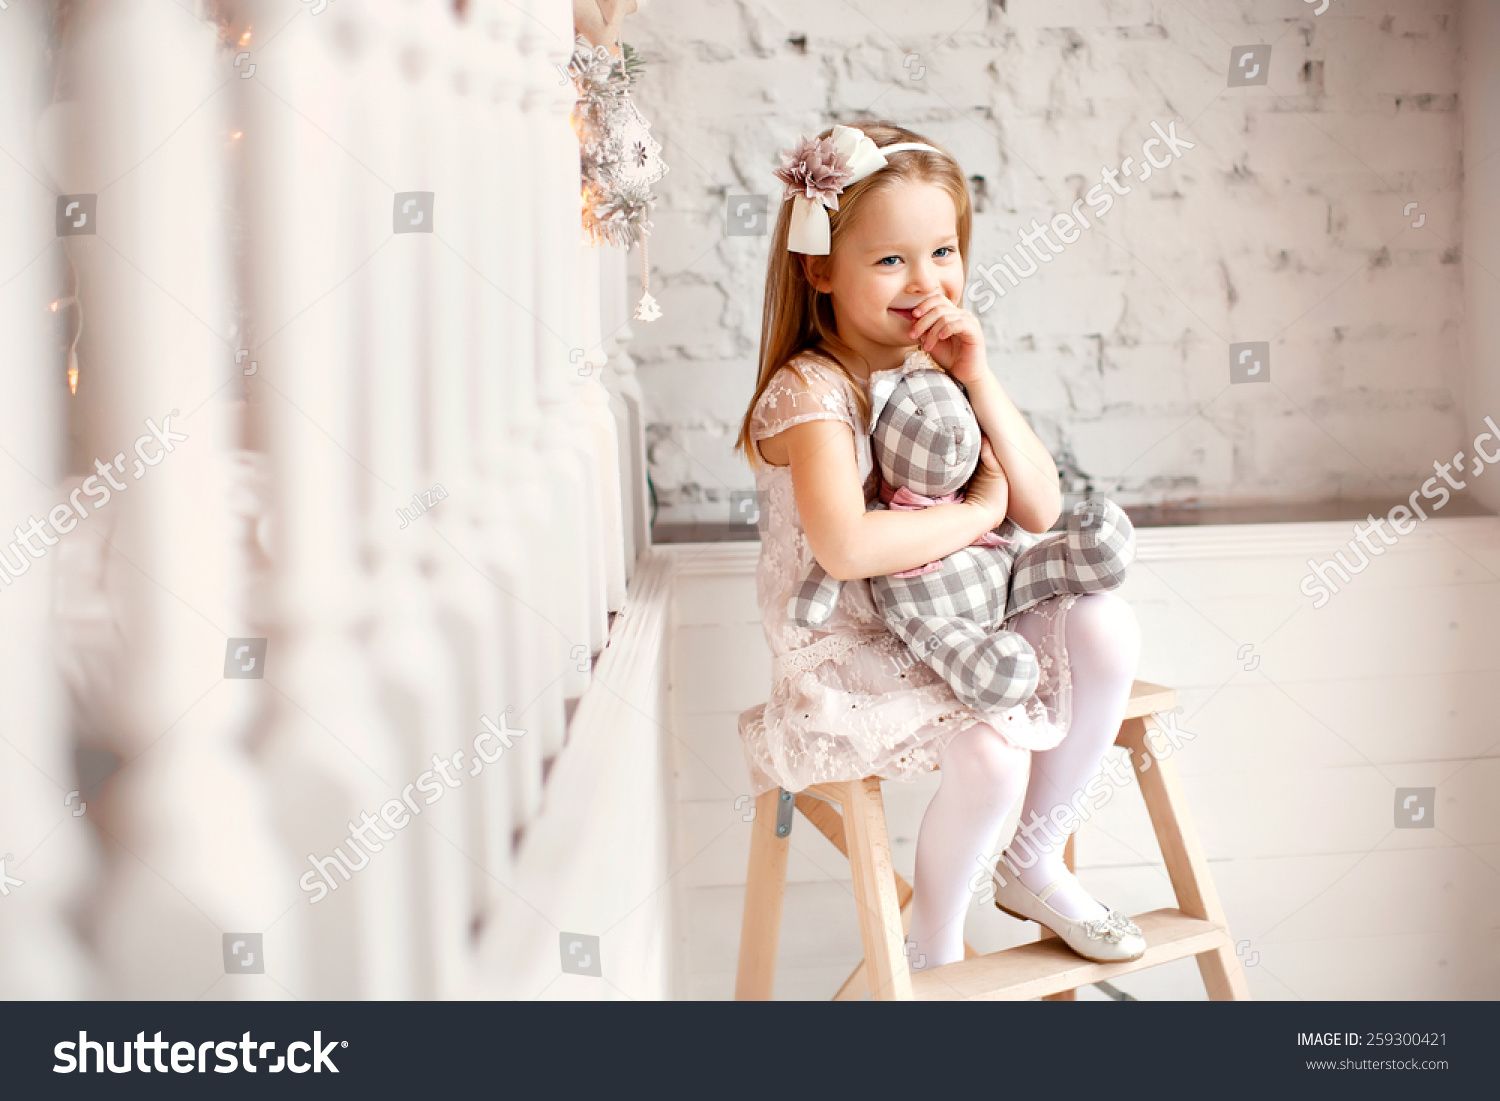 little smiling cute beautiful dress stock photo 259300421